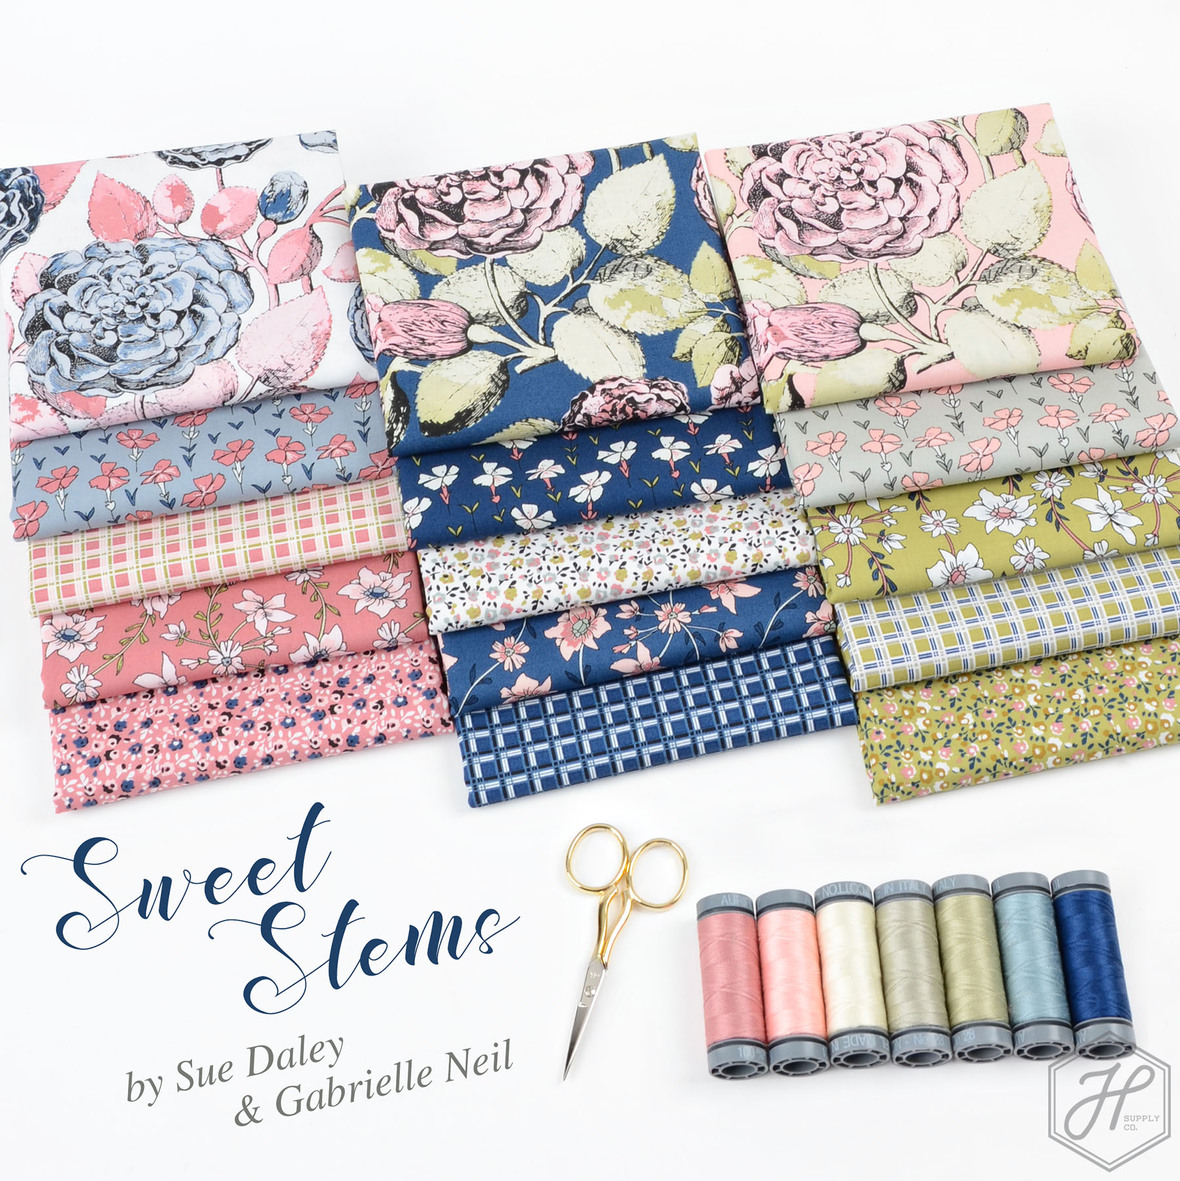 Sweet Stems Sue Daley fabric collection at Hawthorne Supply Co